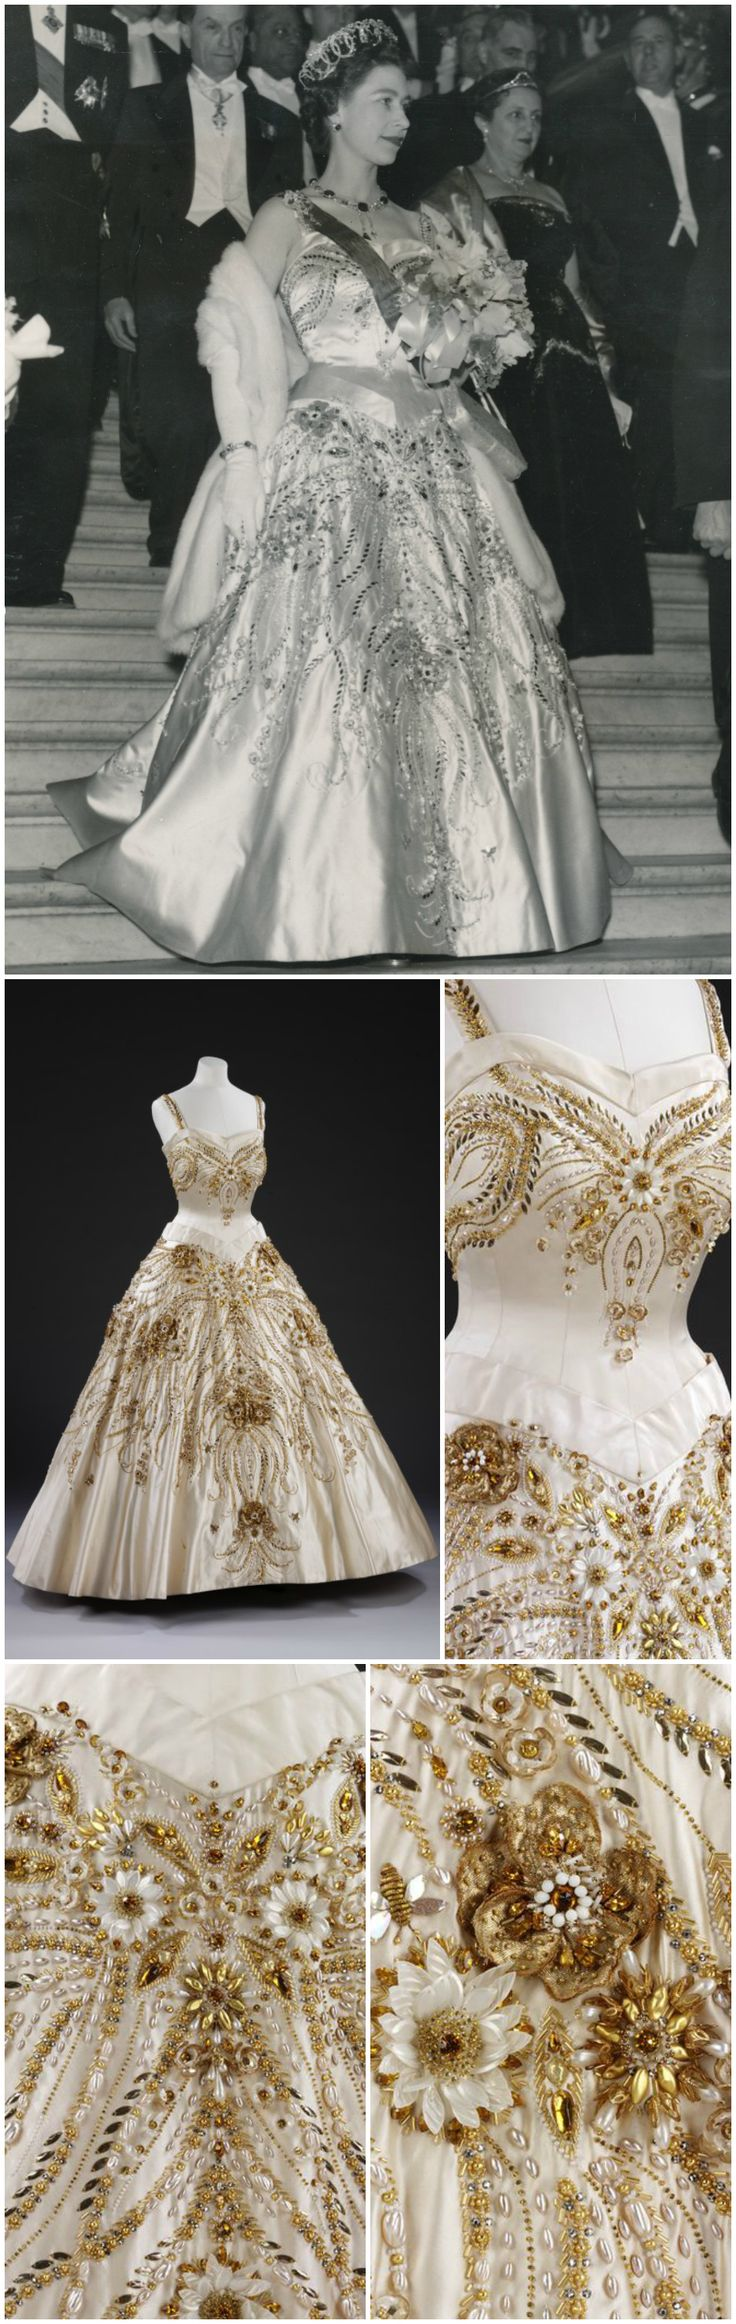 Ceremonial gown, by Norman Hartnell, 1957, at the Victoria and Albert Museum. Designed specially for Queen Elizabeth II's state visit to Paris, April 8-11th, 1957. Decorated with French motifs, including the flowers of France and large gold bees, the emblem of Napoleon. Worn to the state dinner on the first night (Monday 8th April), hosted by President René Coty at the Elysée Palace, followed by a visit to the Opéra (see black-and-white photo, via romanbenedikhanson on Flickr).